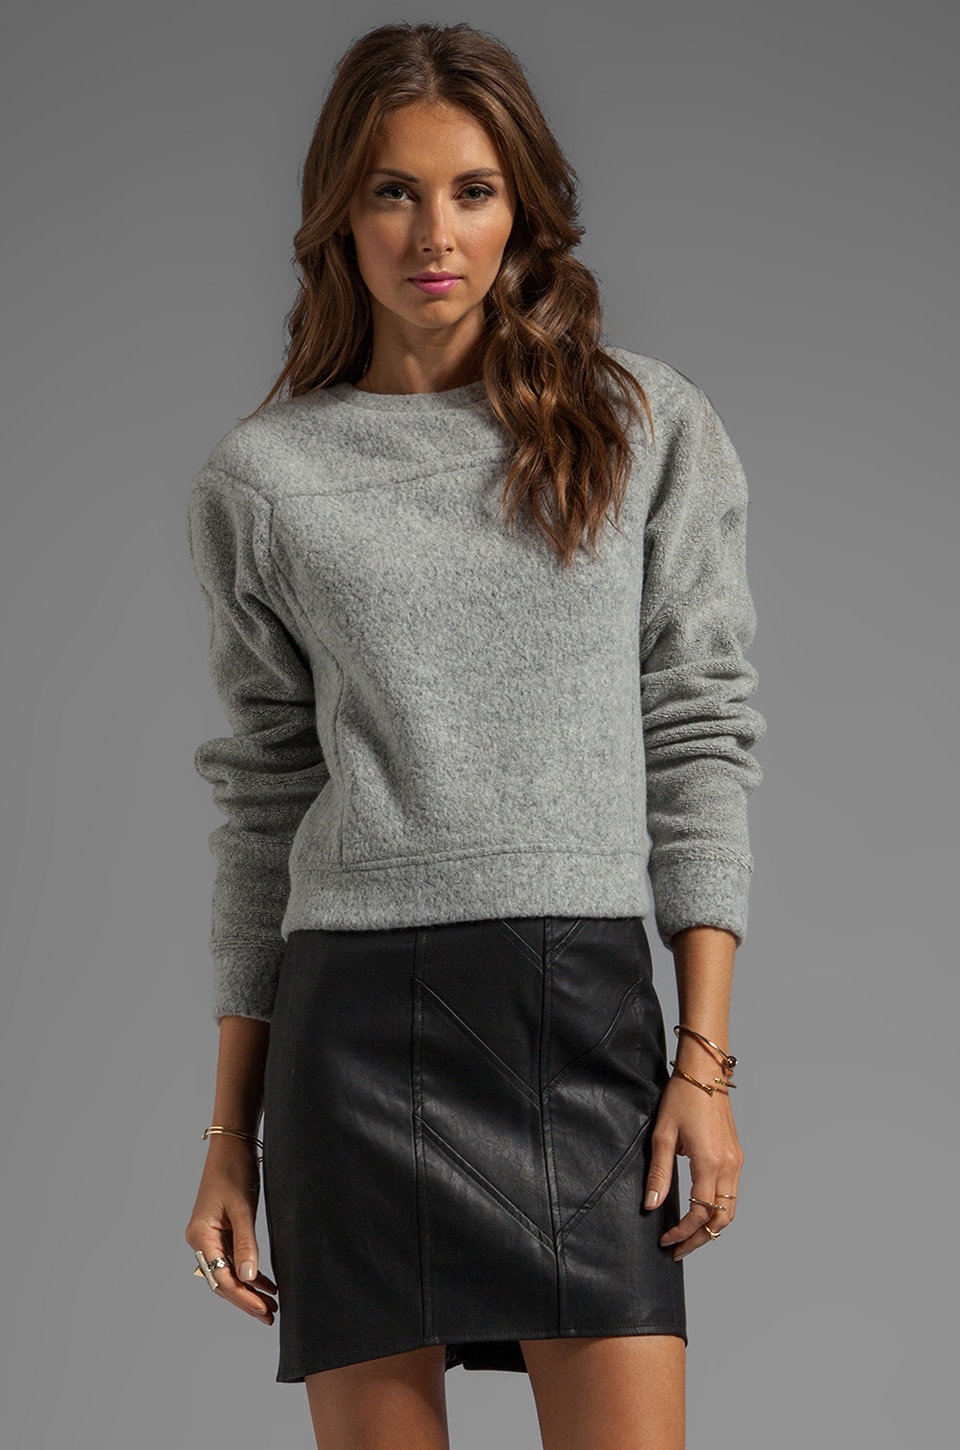 T by Alexander Wang Brushed Wool Sweatshirt Top in Light Heather Grey